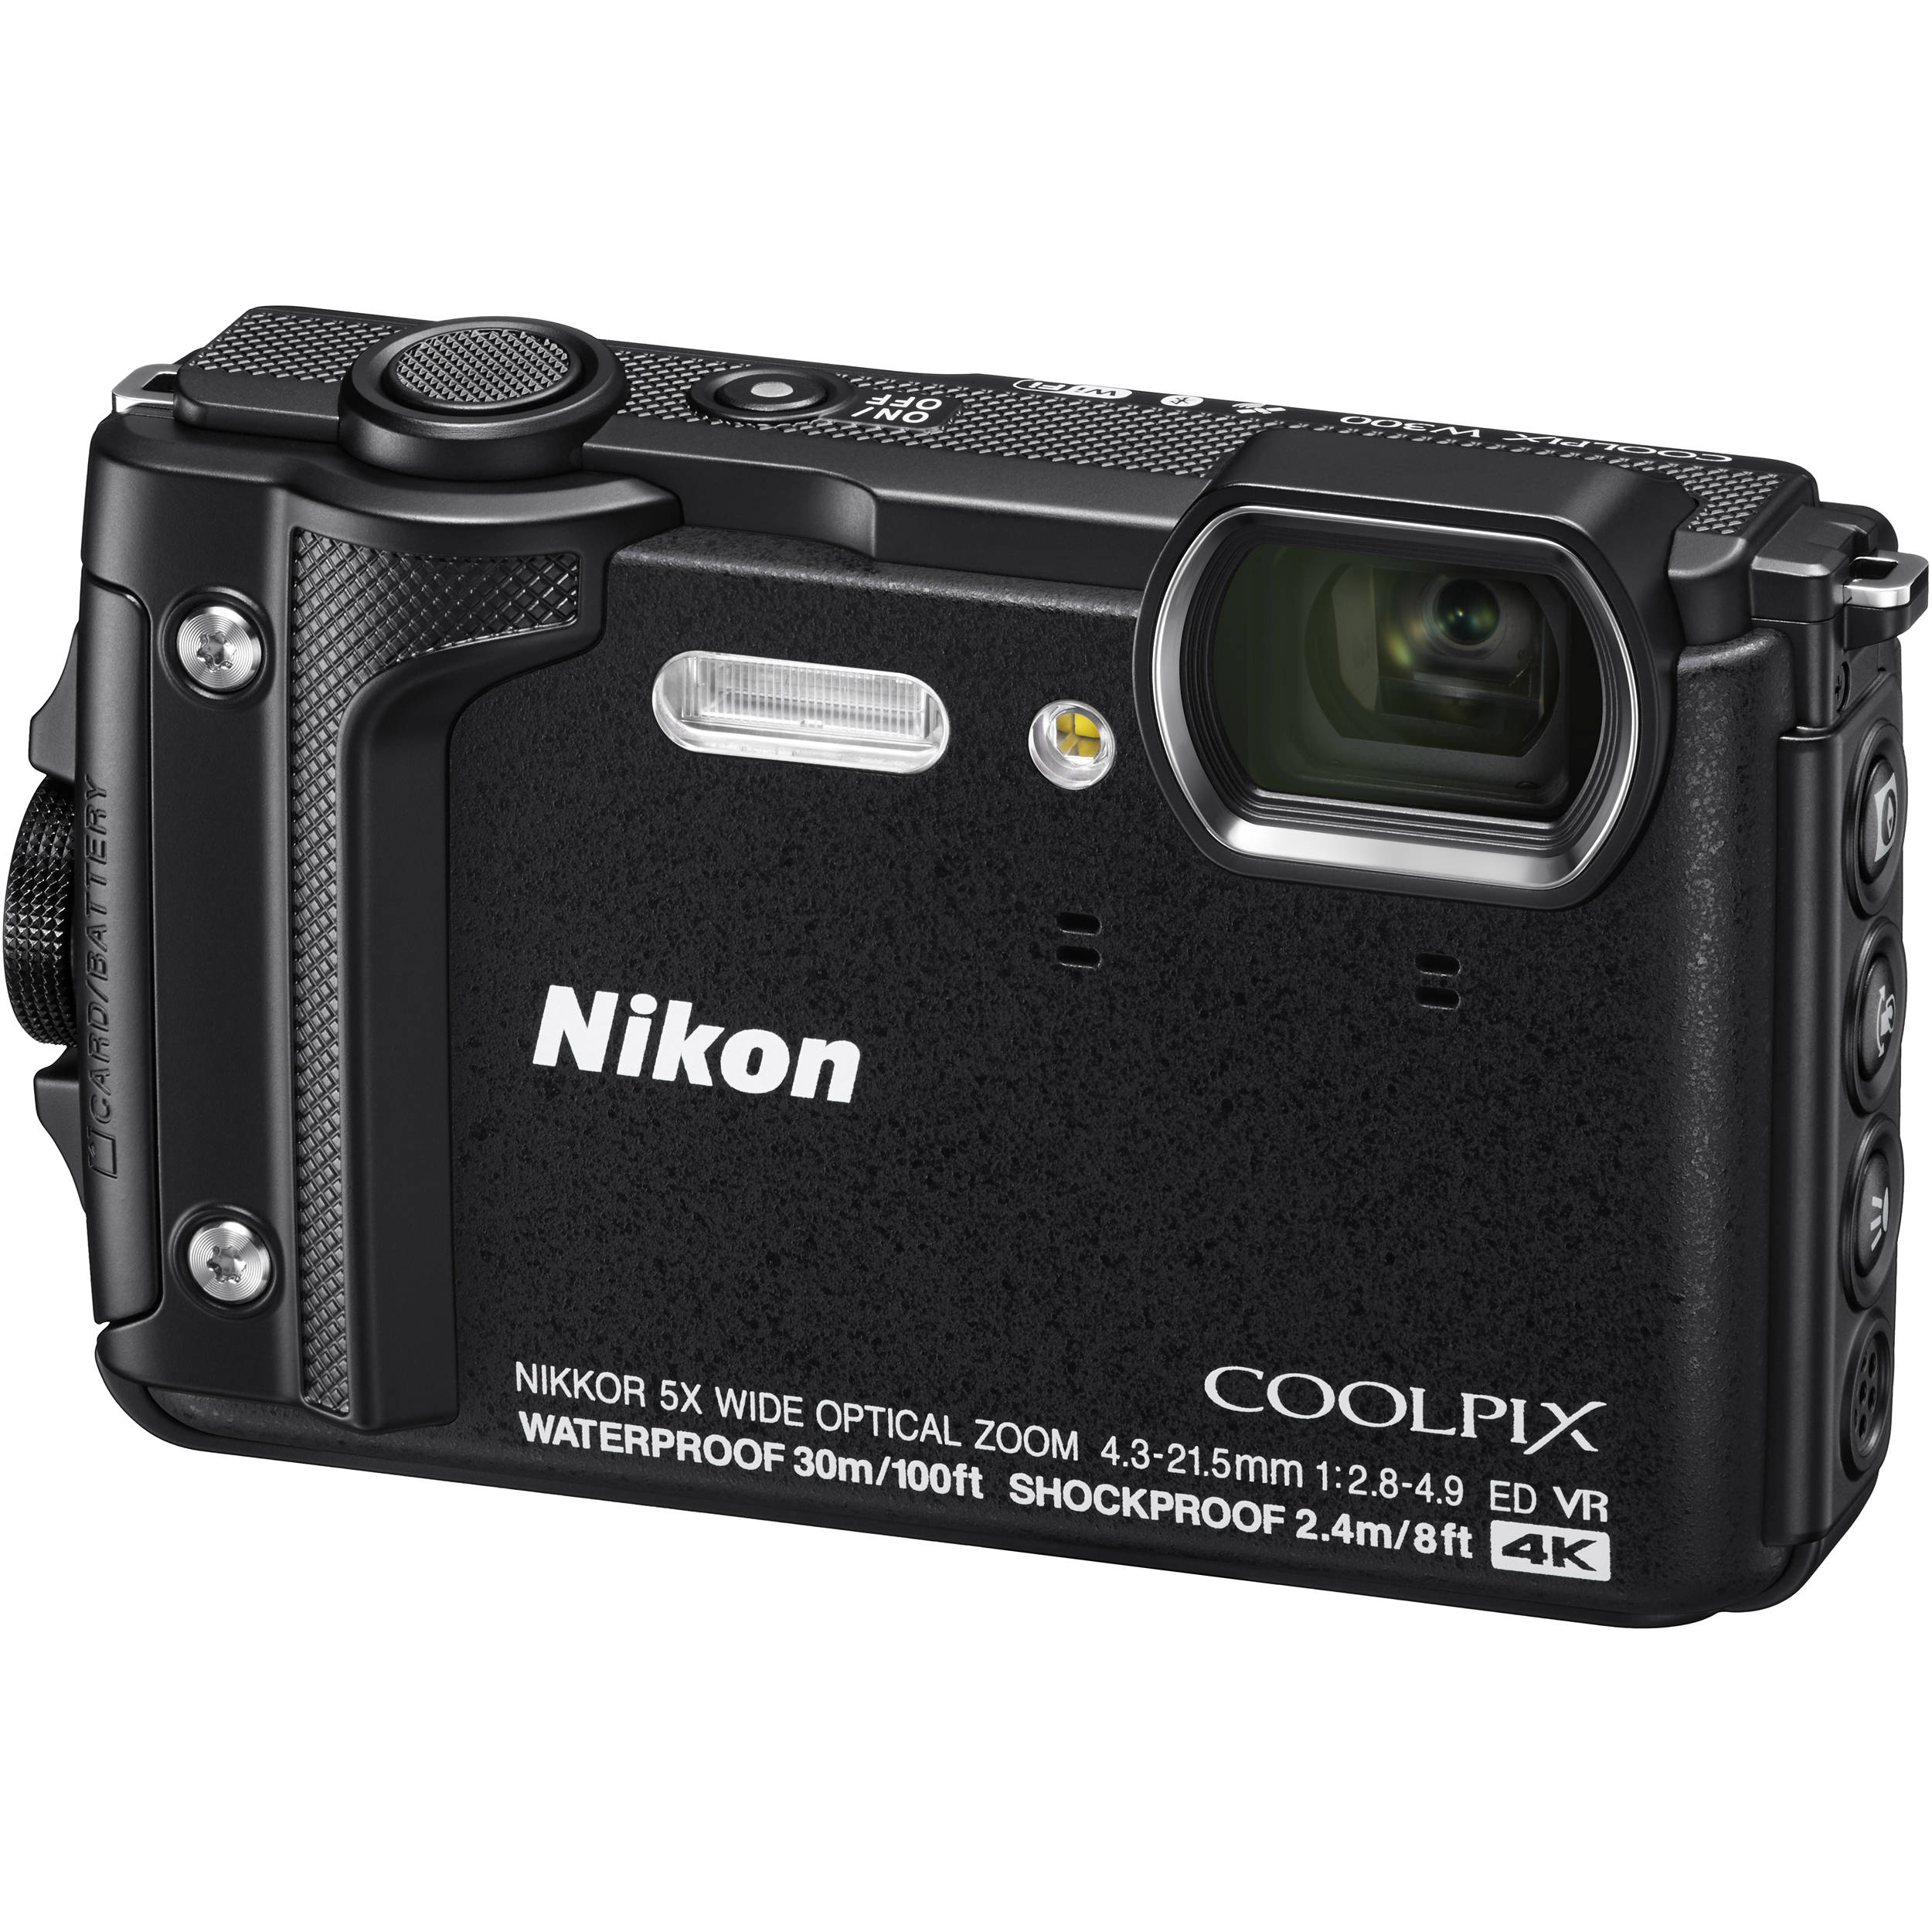 Nikon Coolpix W300 Digital Camera Black 26523 Bh Photo Video Flash Circuit Further Disposable Schematic